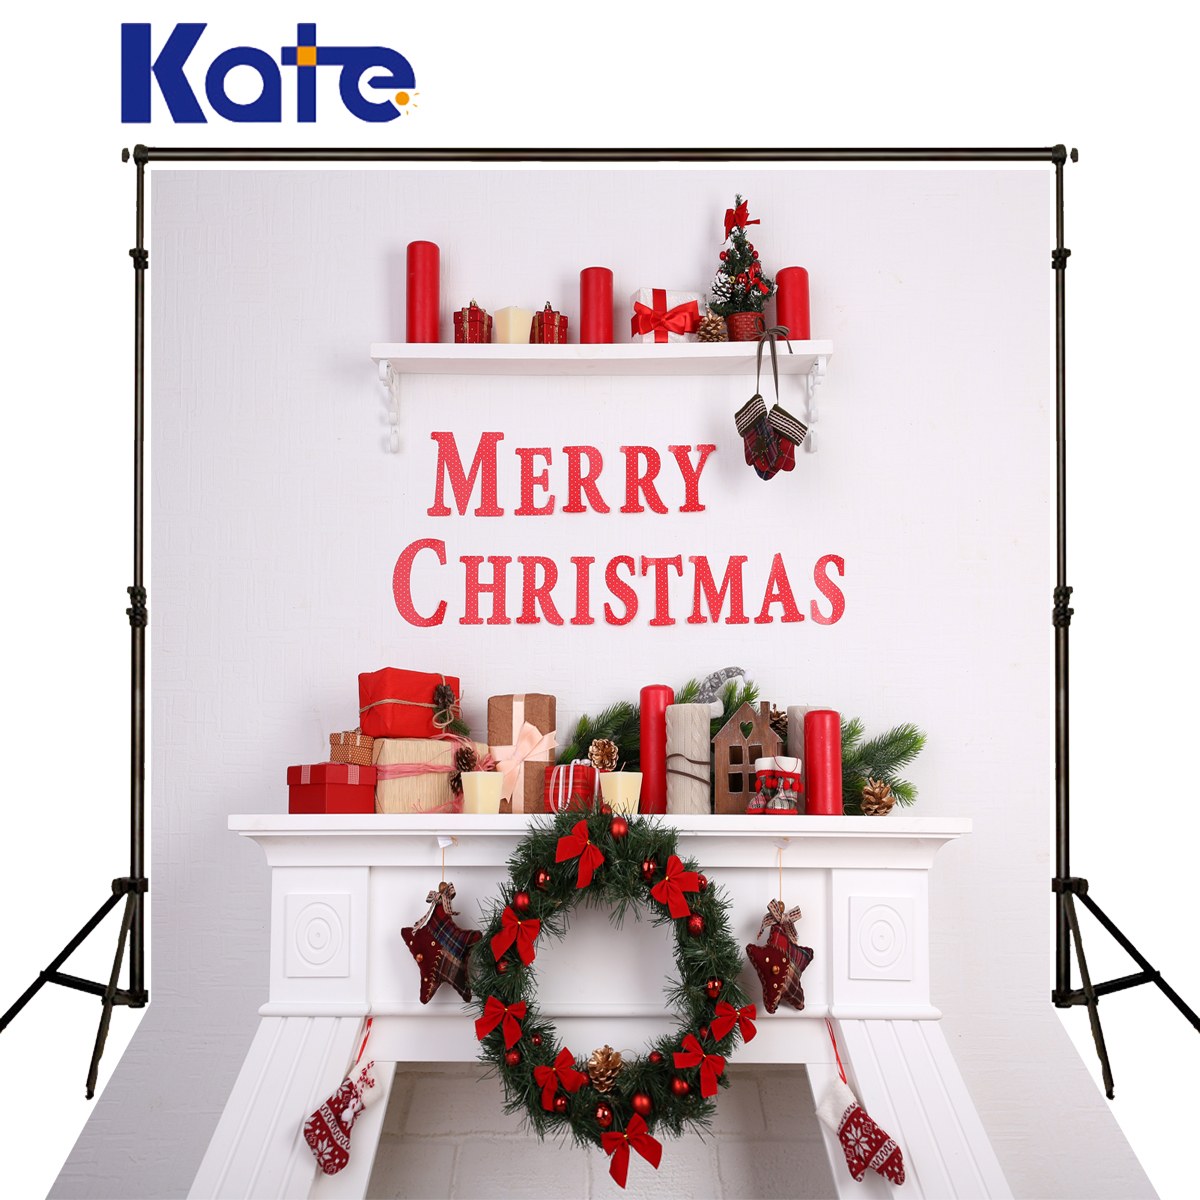 Kate Backgrounds Photography Christmas Red Candle Glove Background Photography Fireplace Stove Bow Fundo Fotografico Natal<br>